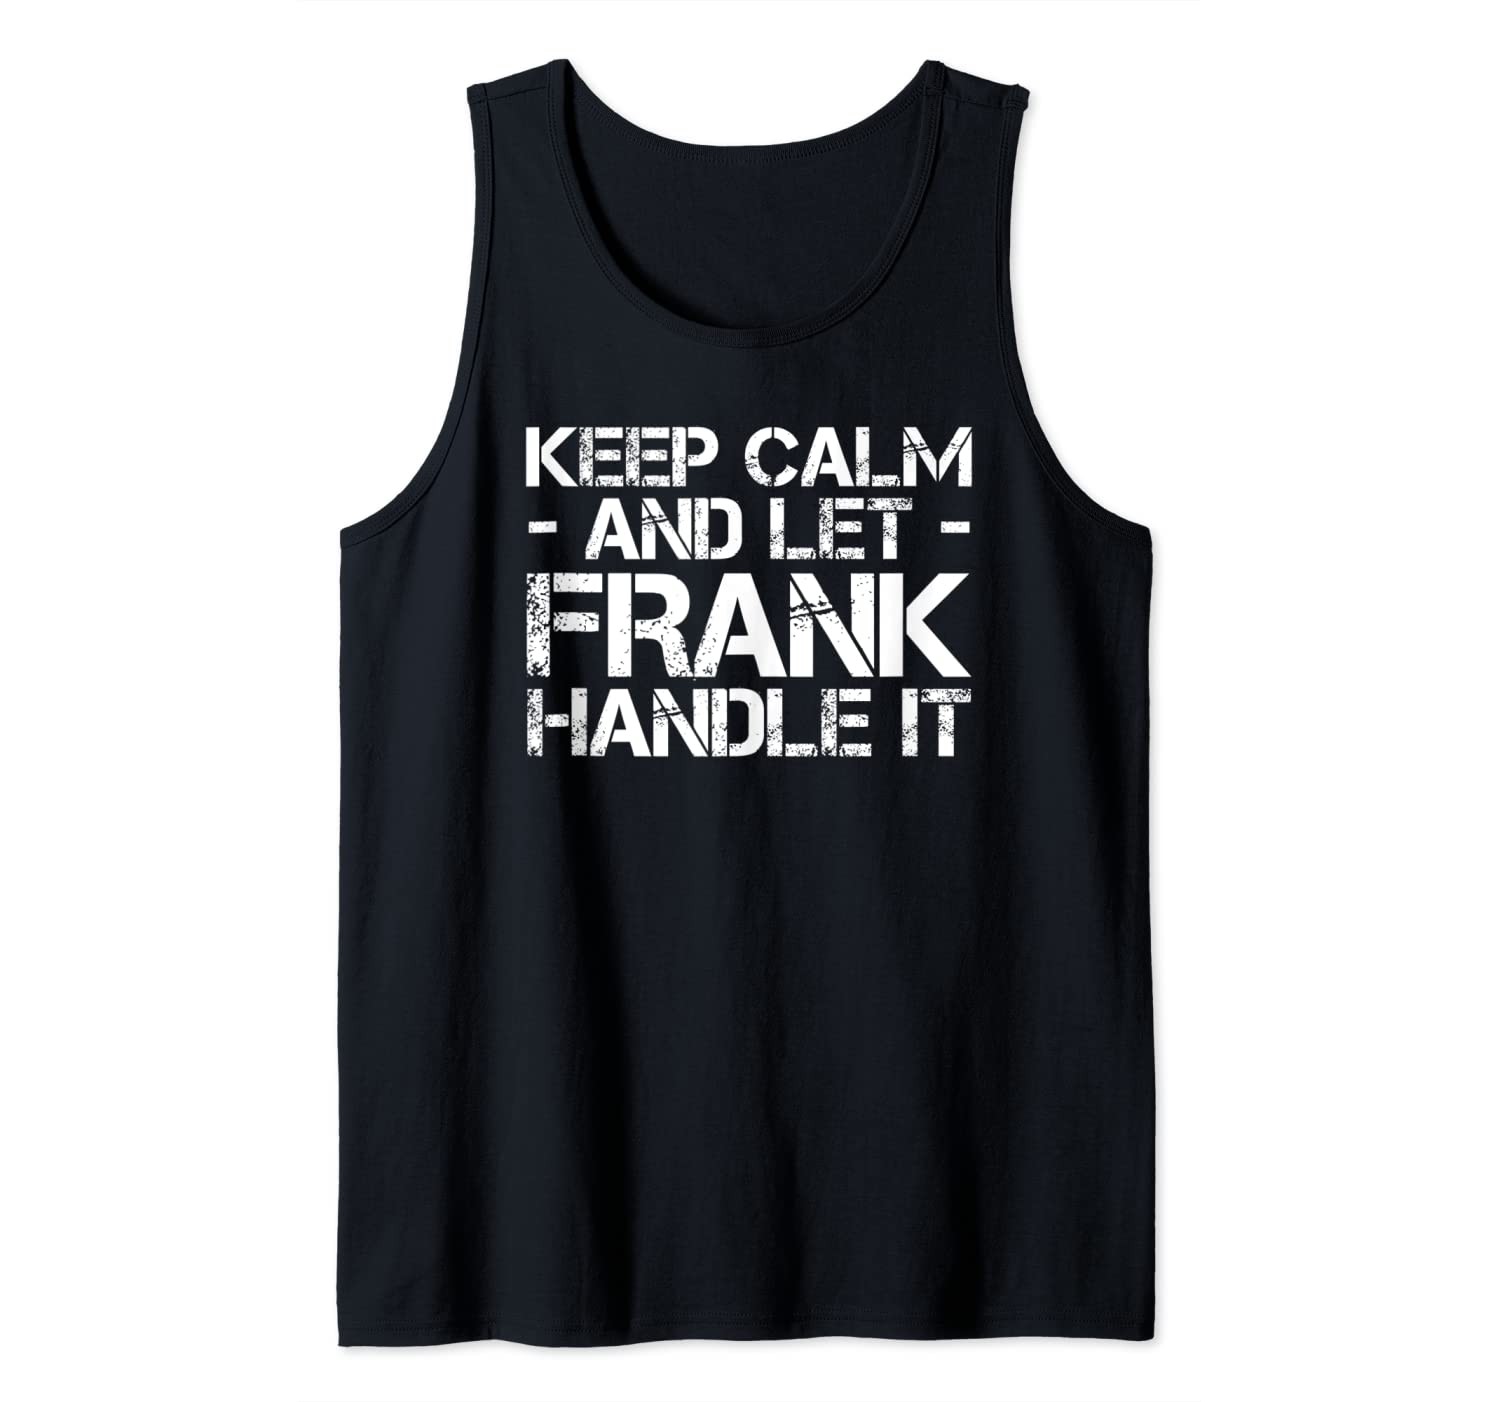 KEEP CALM AND LET FRANK HANDLE IT Funny Birthday Gift Tank Top